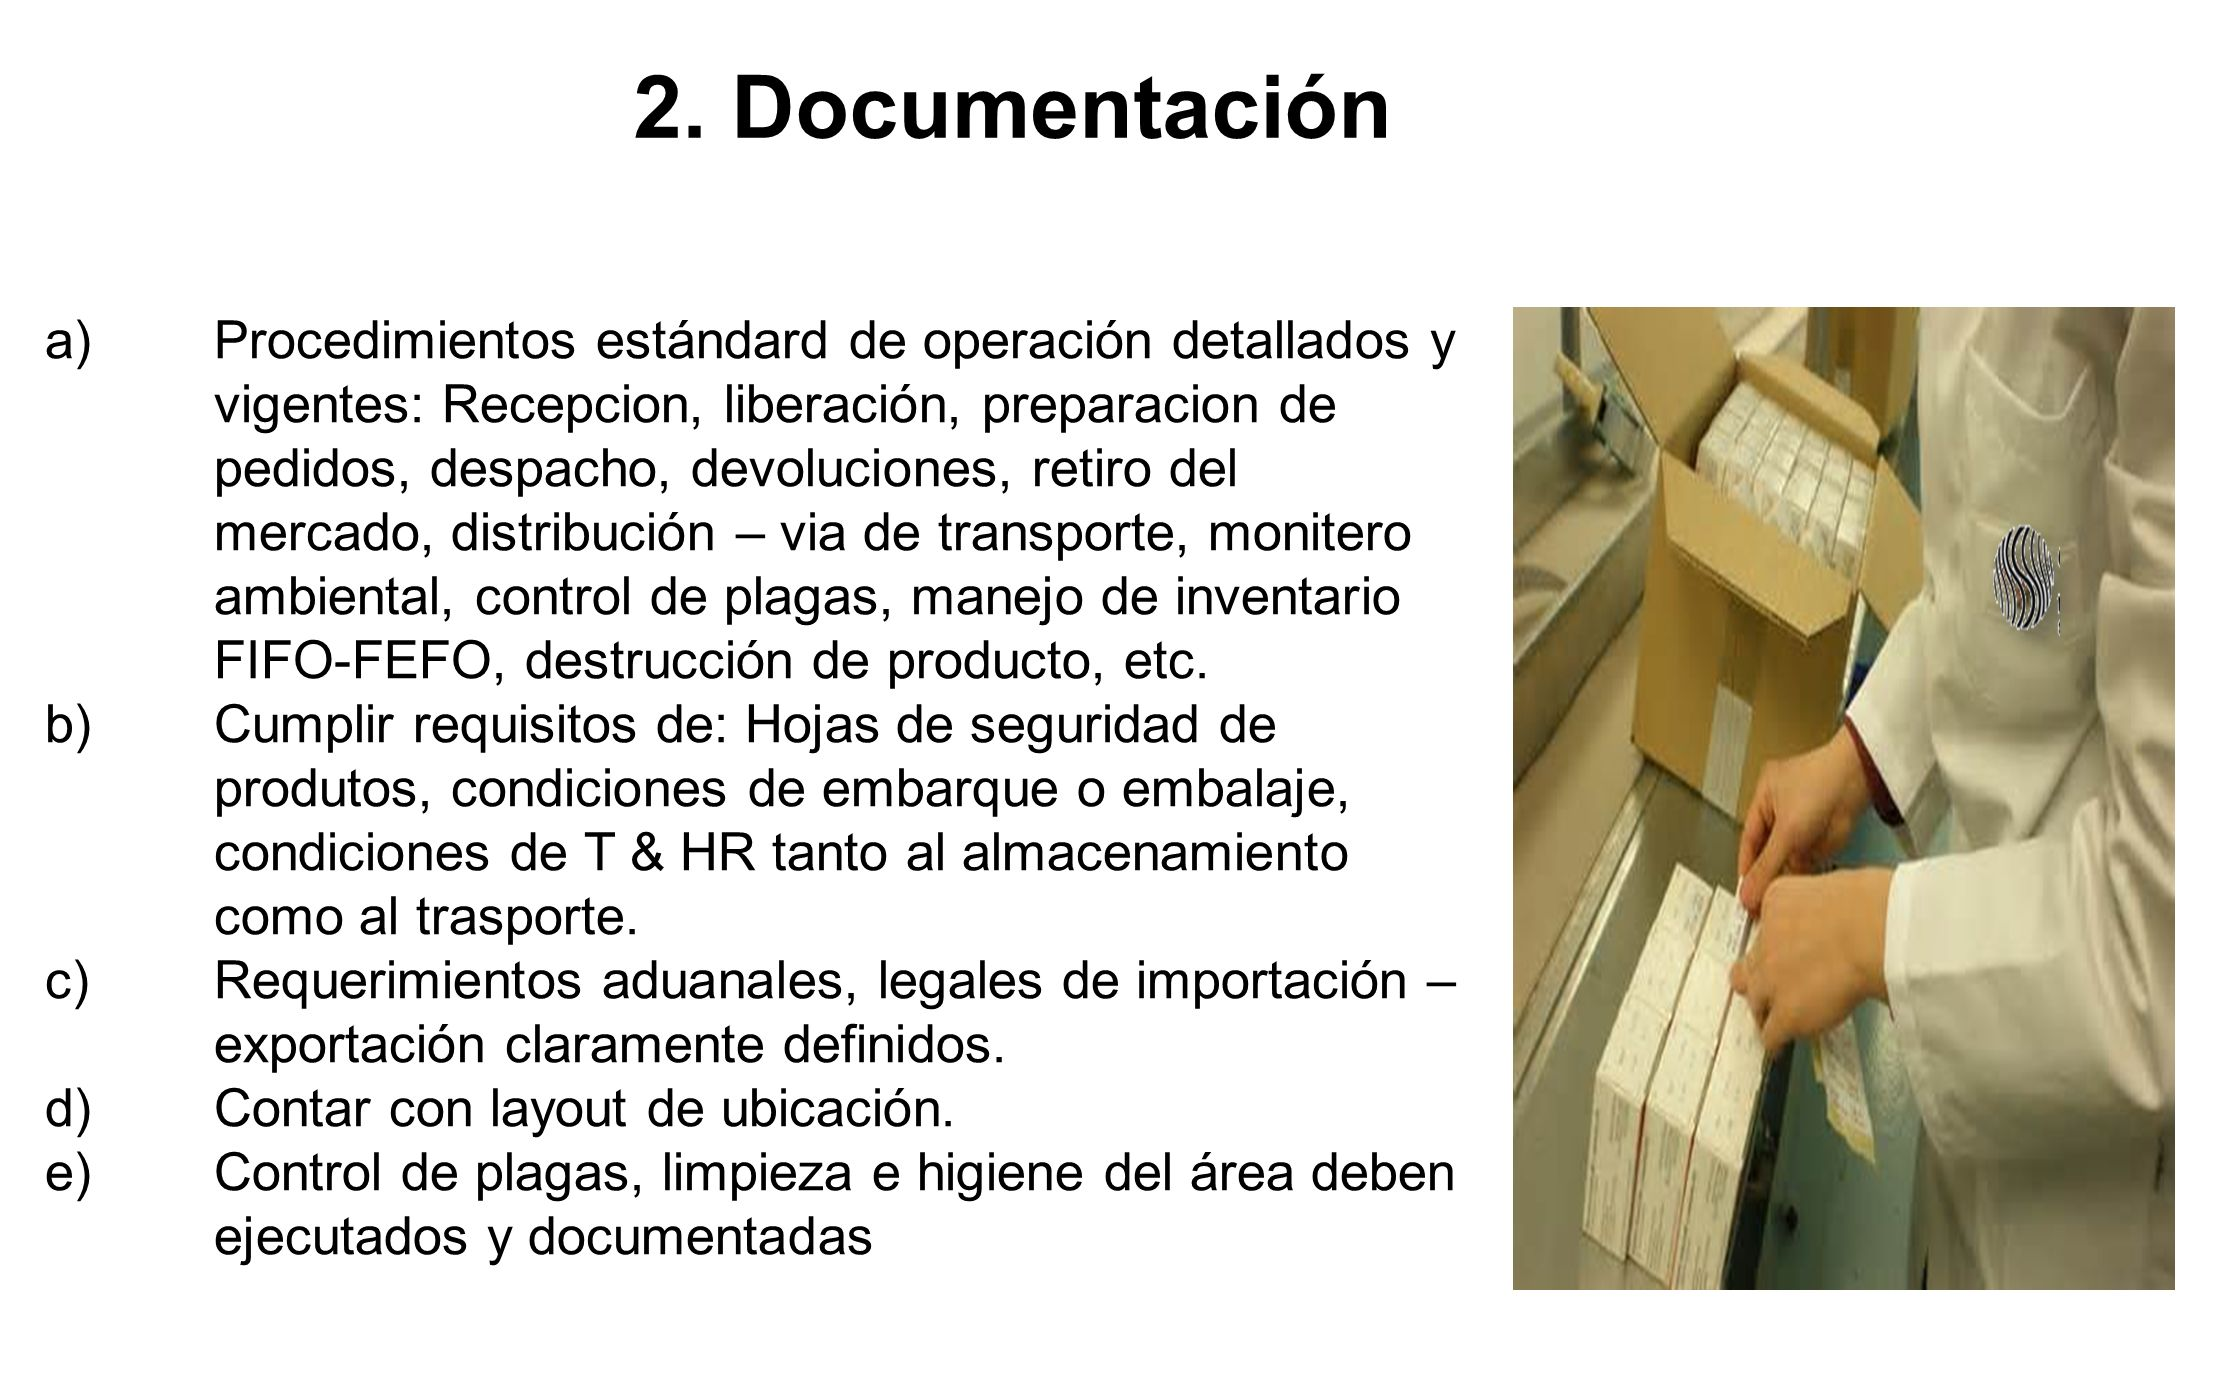 2. Documentación